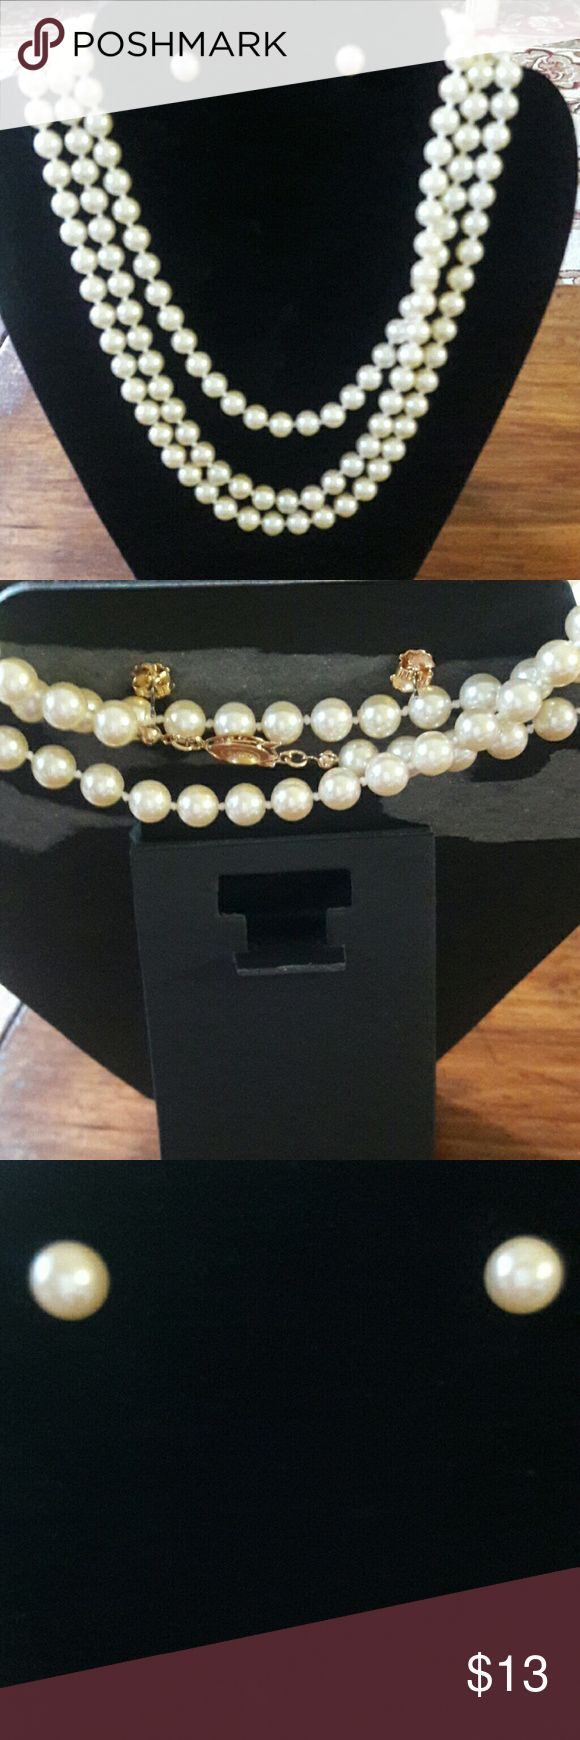 Strand of pearls and matching earrings This is a strand of pearls that measures 56 inches long and as you can see by the pictures, can be tripled. The earrings have the same size pearl as the necklace.  A very pretty set. Avon Jewelry Necklaces